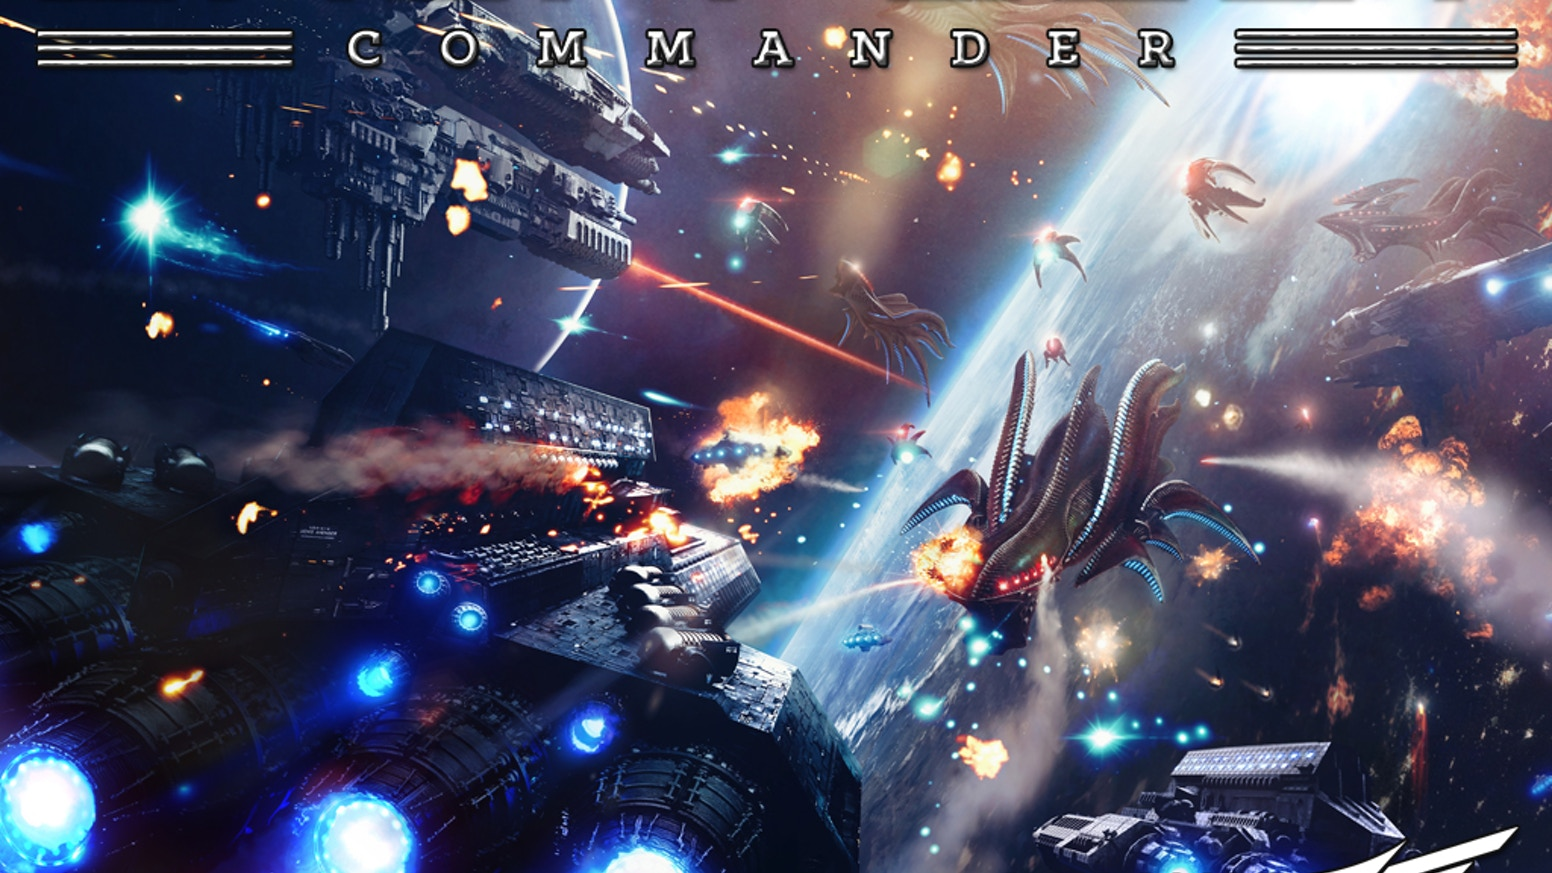 Dropfleet Commander is an orbital space combat game designed by Andy Chambers and David Lewis, based in the Dropzone Commander Universe